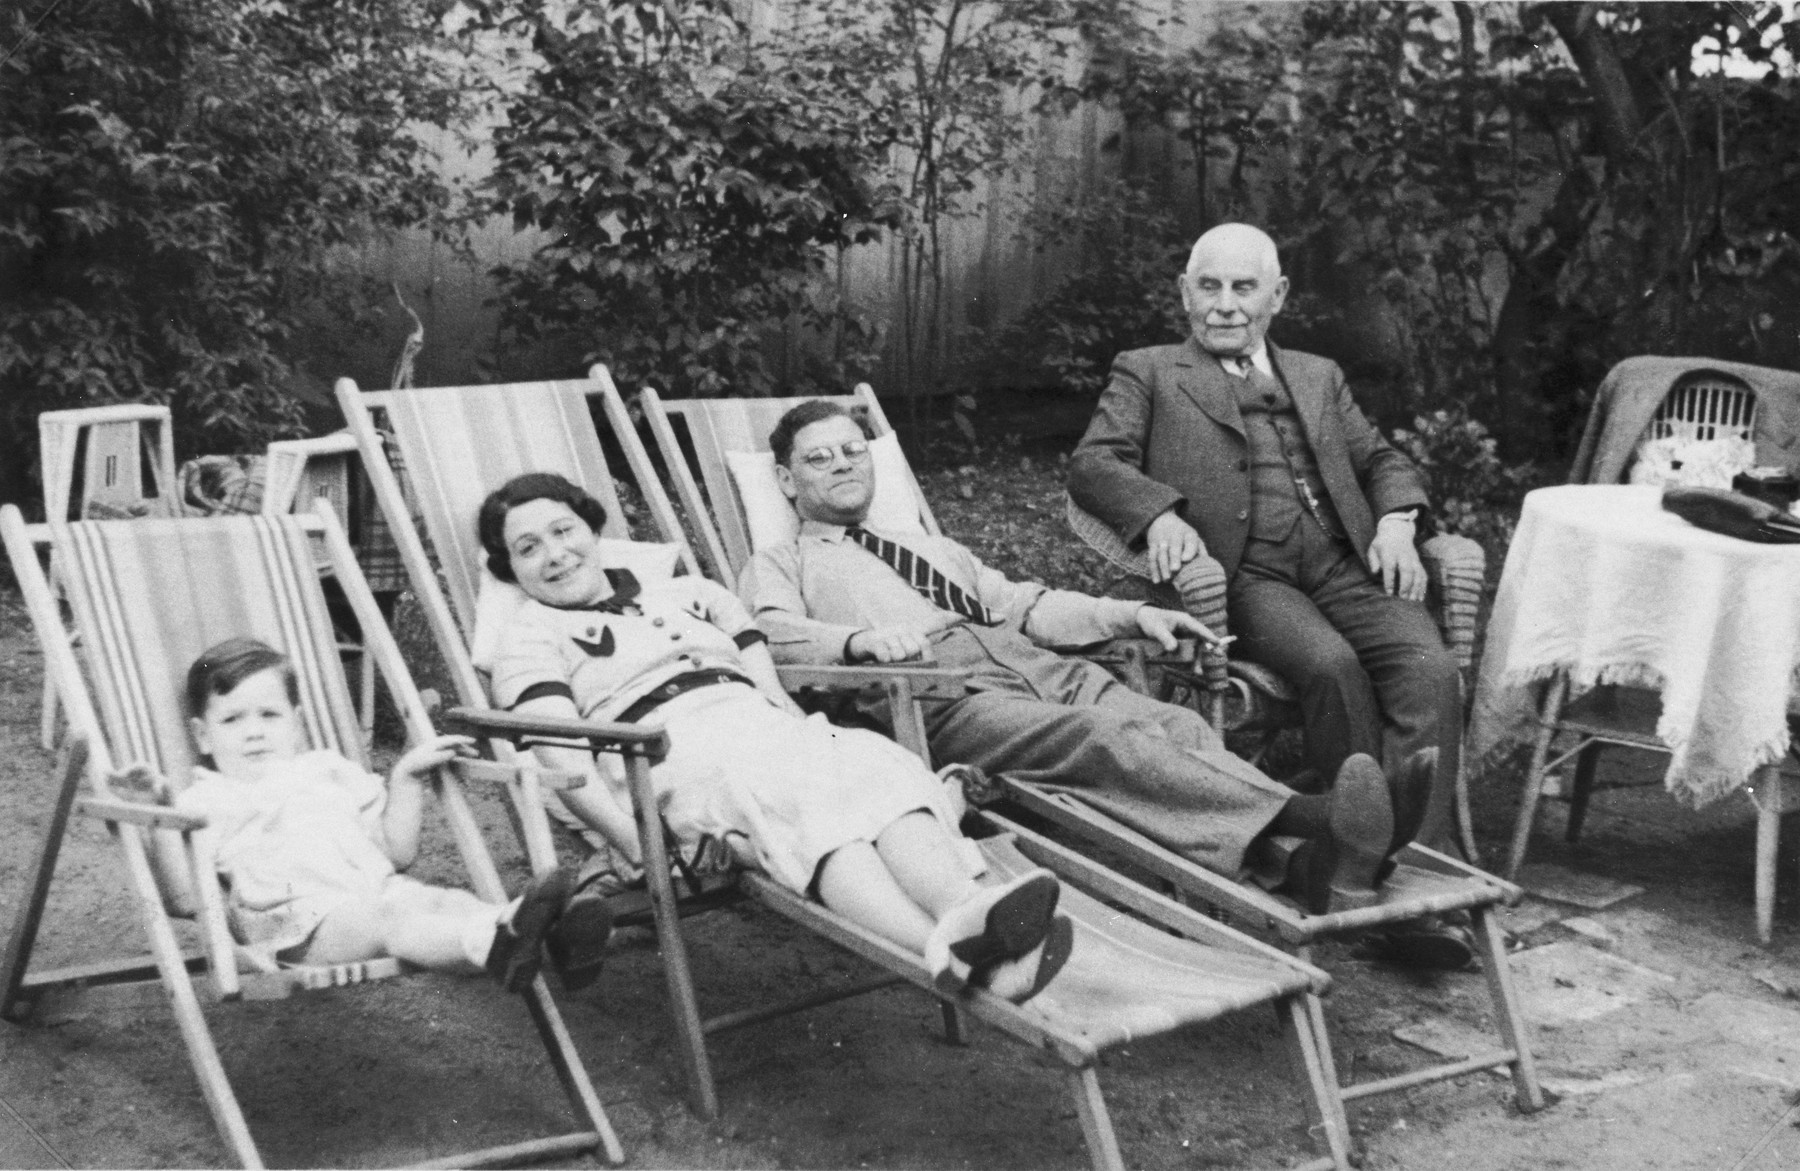 The Jacobsohn family relaxes outside on lawn chairs.  Pictured from left to right are: Rudolf, Margaret and Erich Jacobsohn and Erich's father, George Jacobsohn.